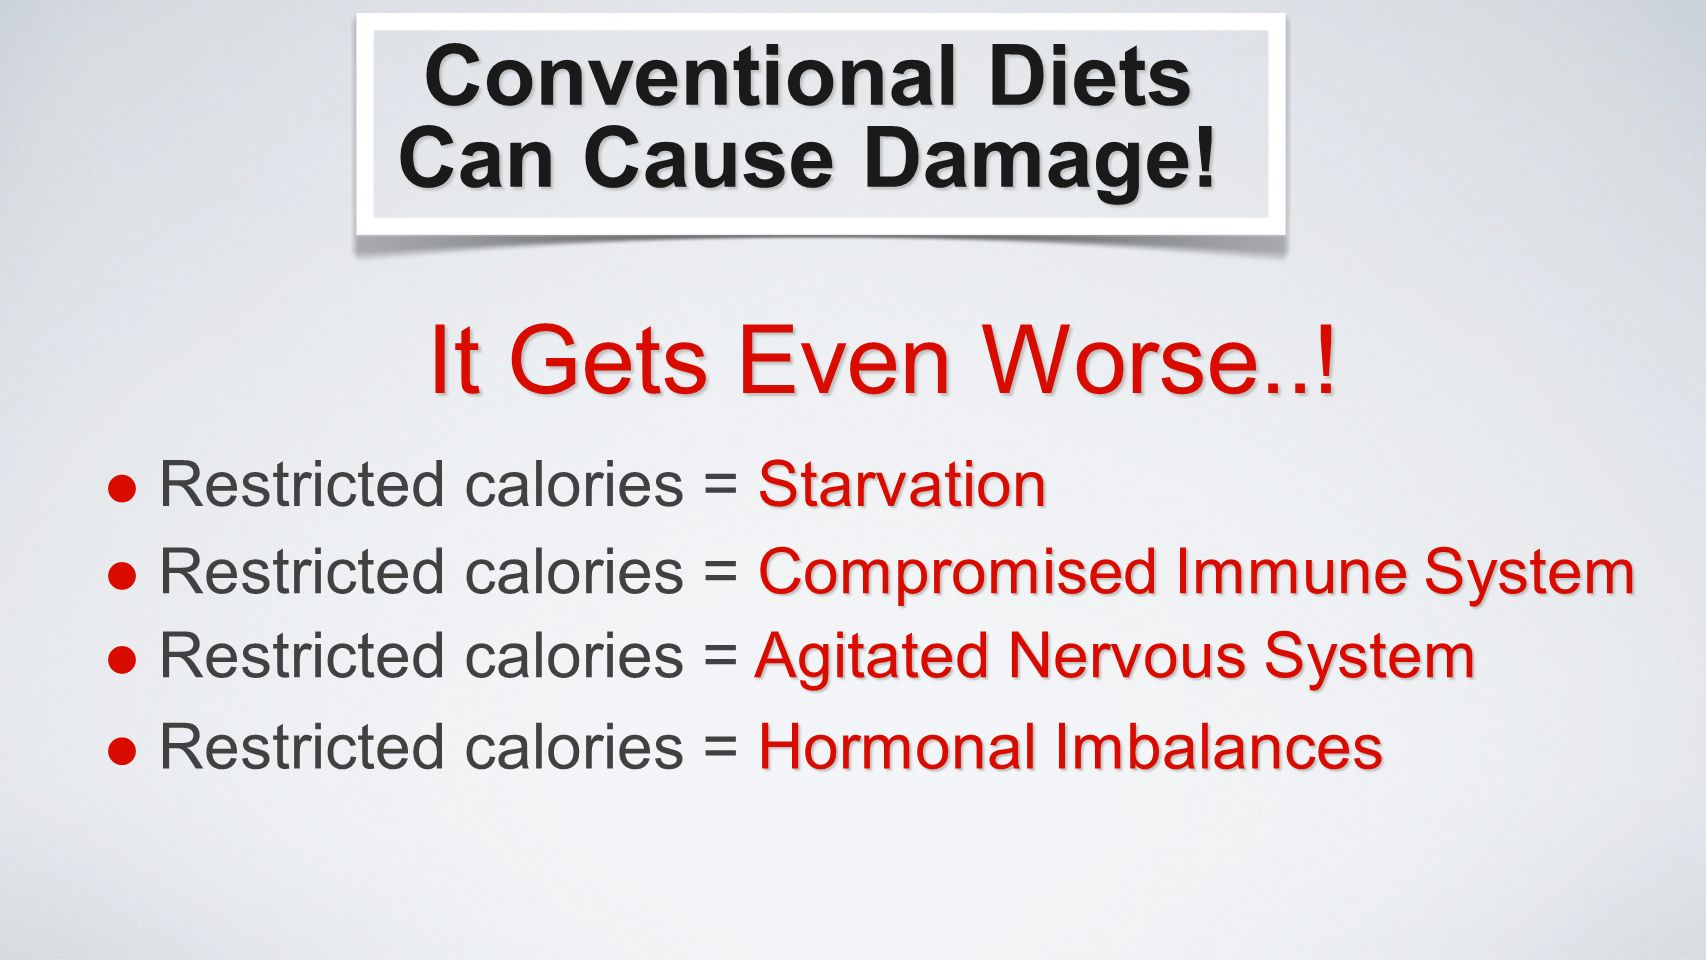 Starvation Restricted calories = Starvation Hormonal Imbalances Restricted calories = Hormonal Imbalances Conventional Diets Can Cause Damage.